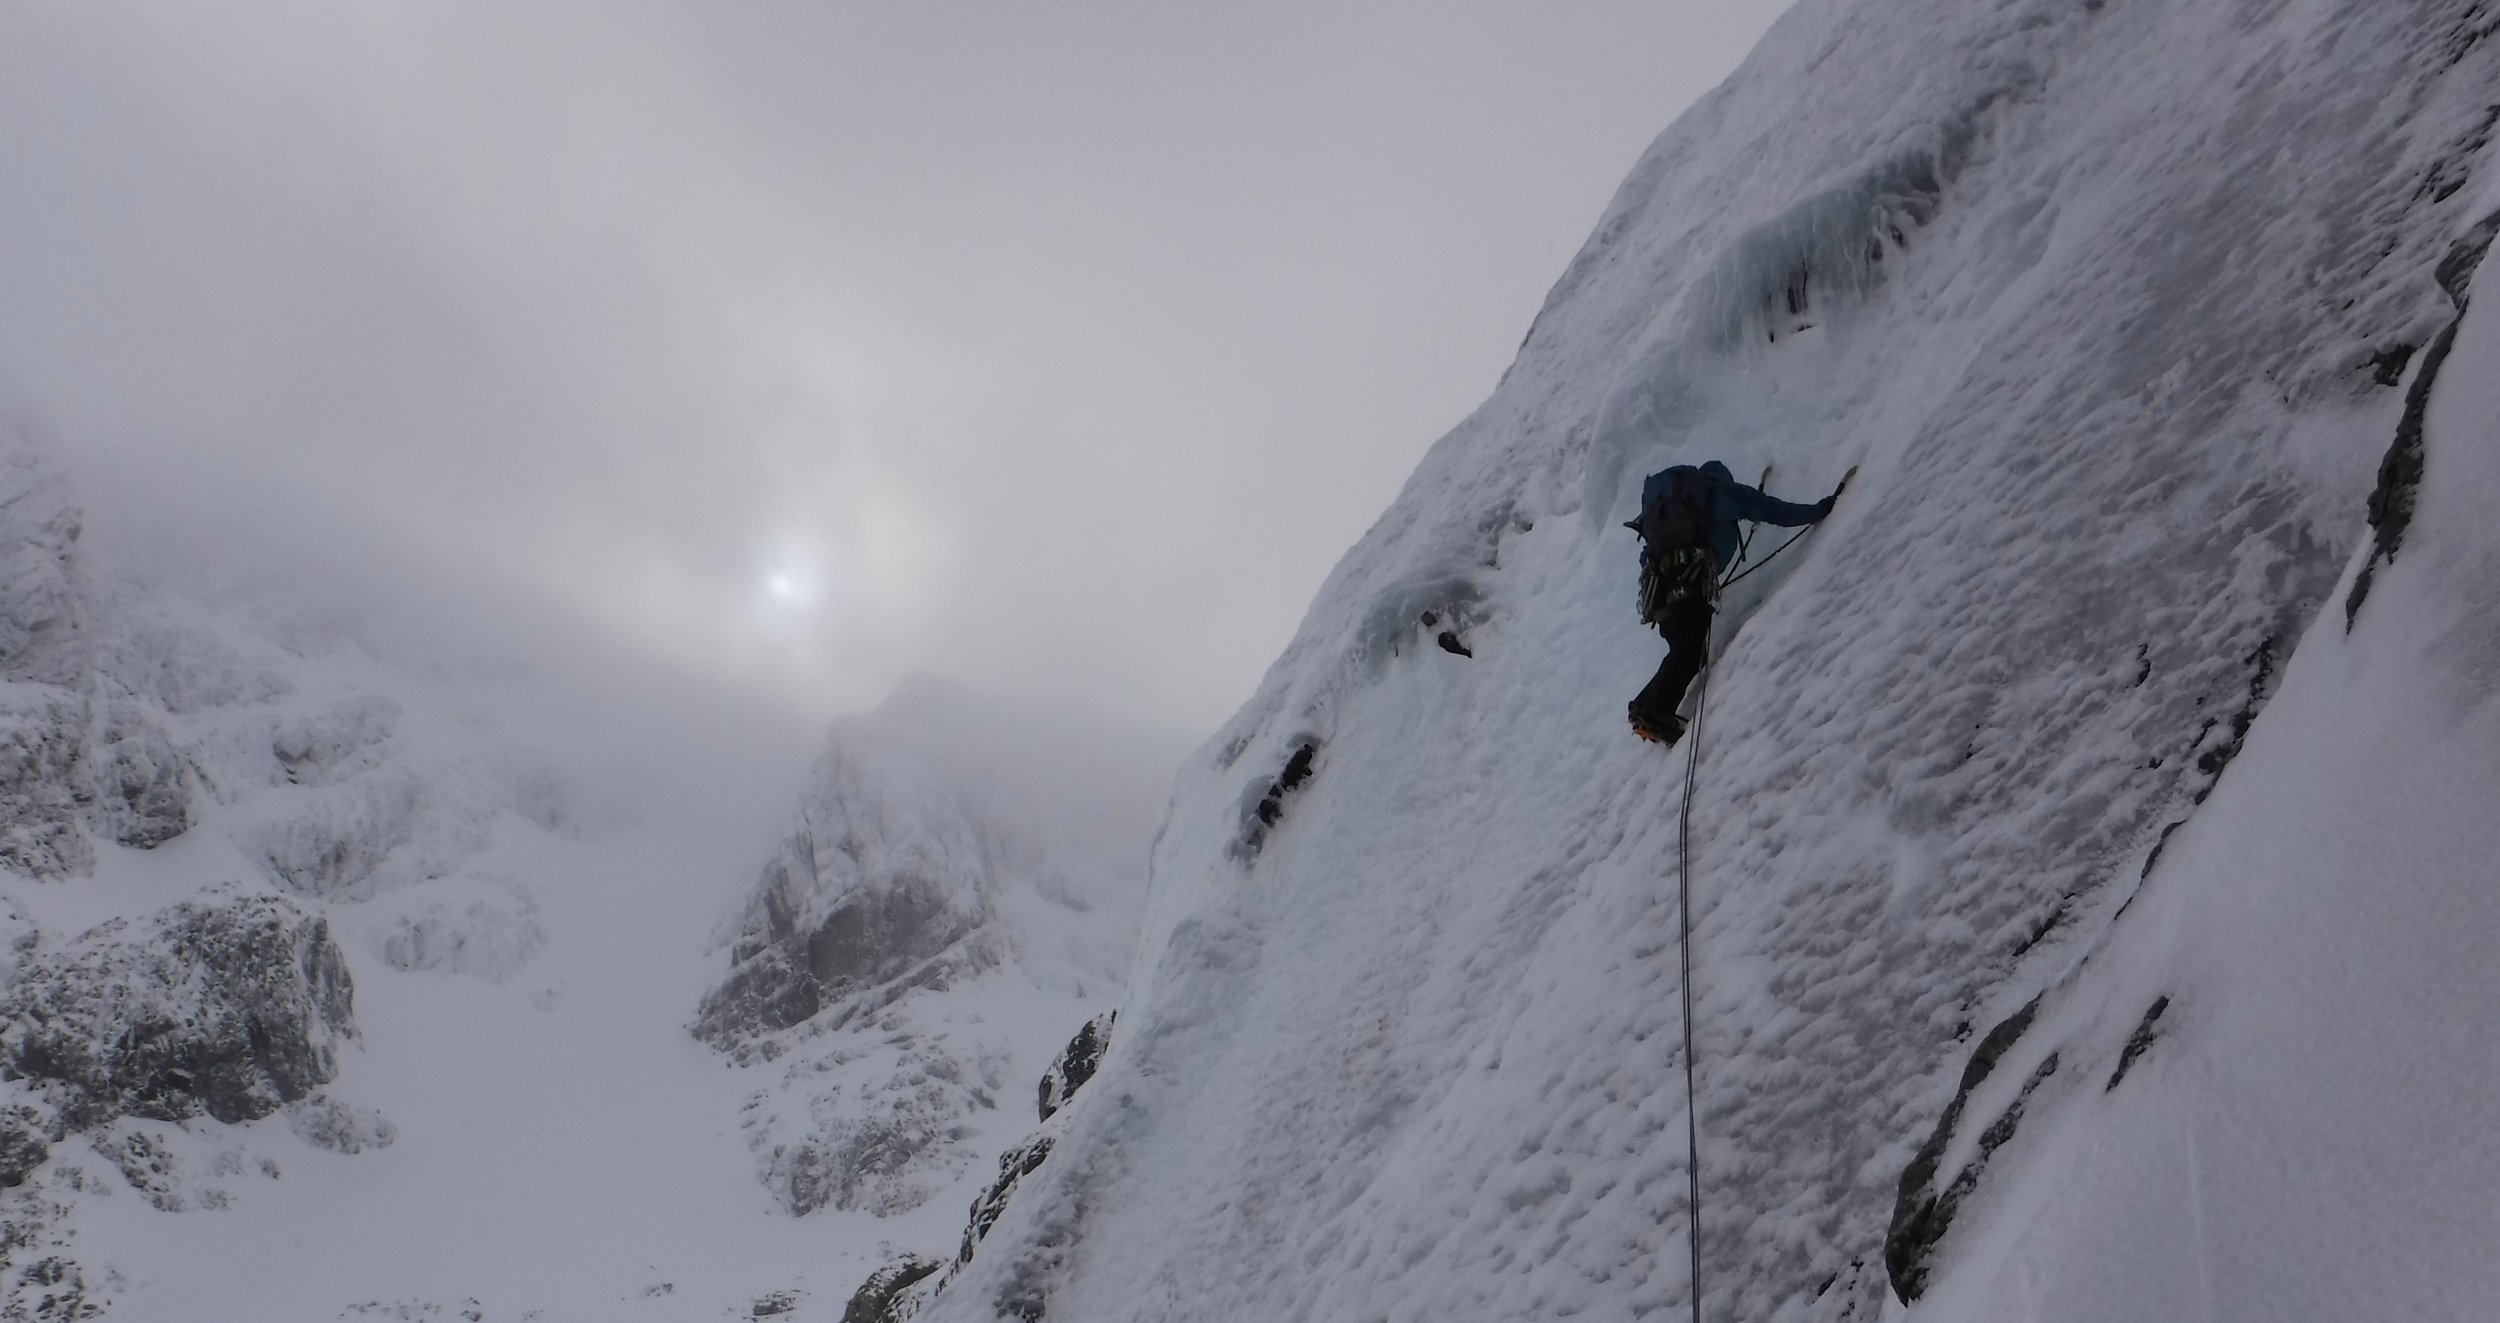 The Curtain, IV,4, Ben Nevis, March 2016